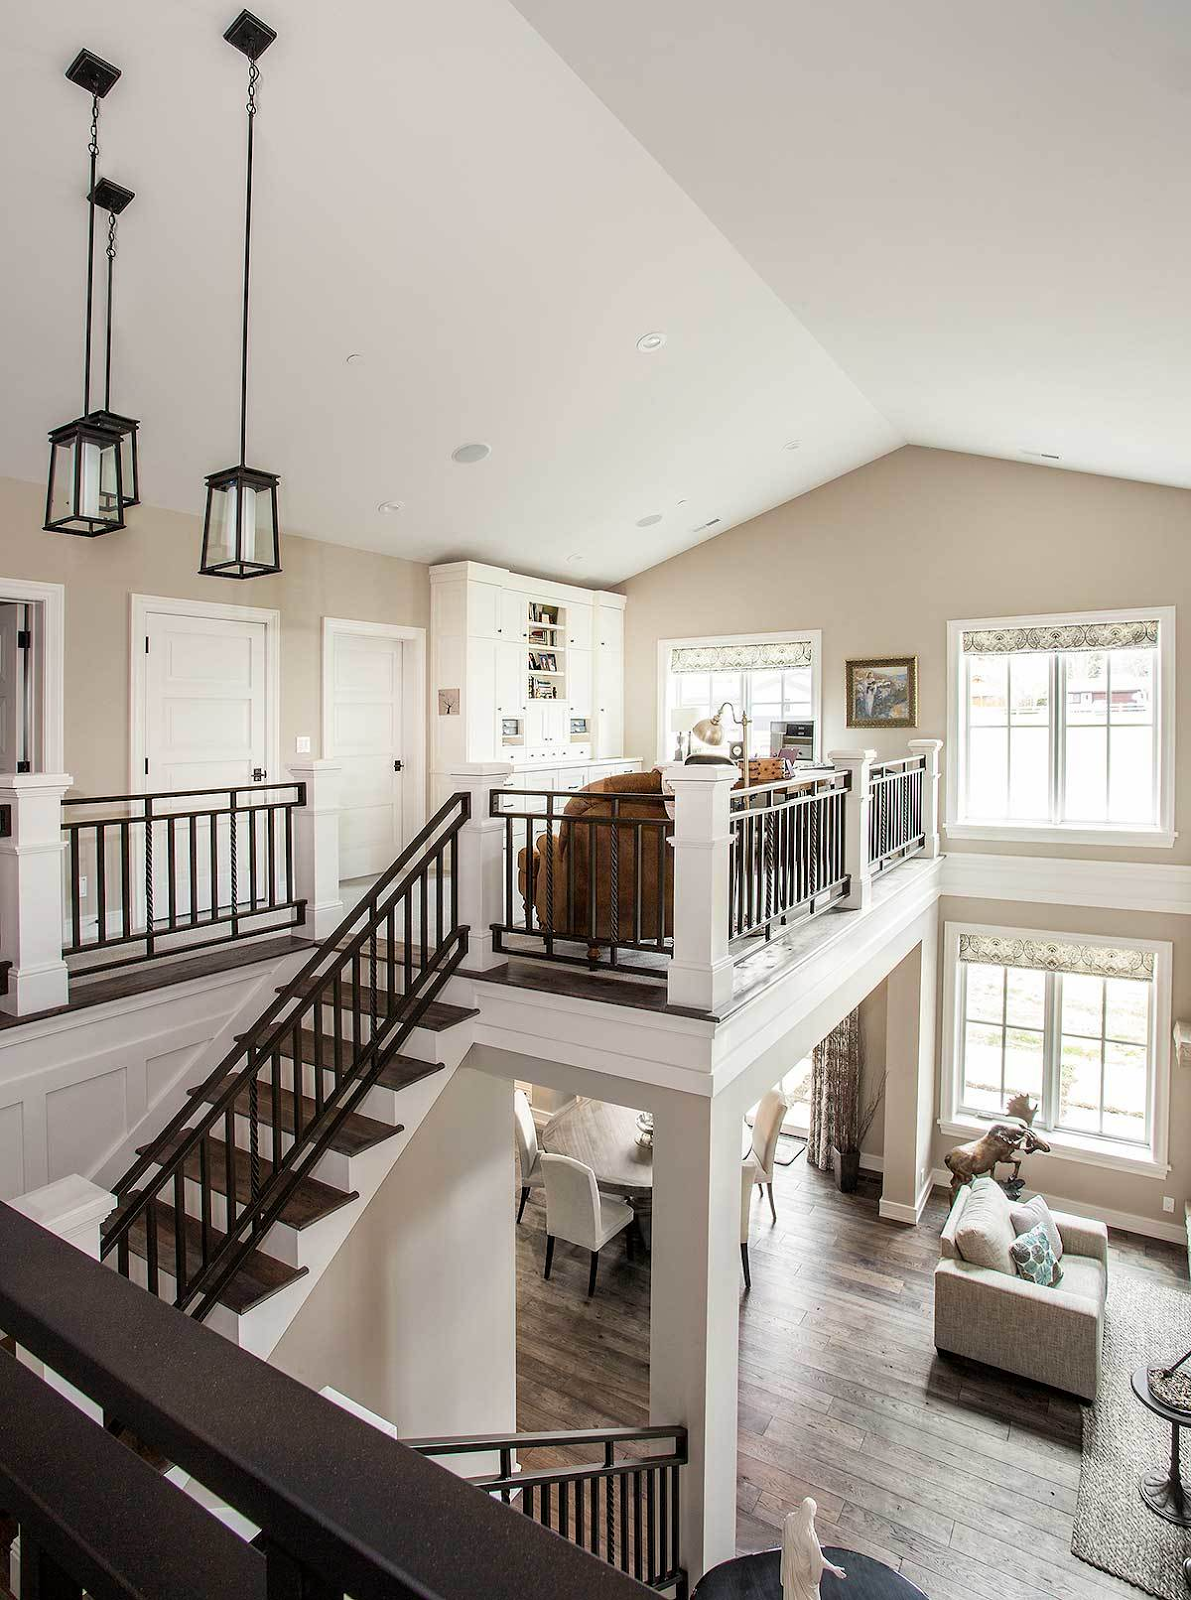 This elegant home features a stylish staircase leading to the home's second floor landing where the home office is located.